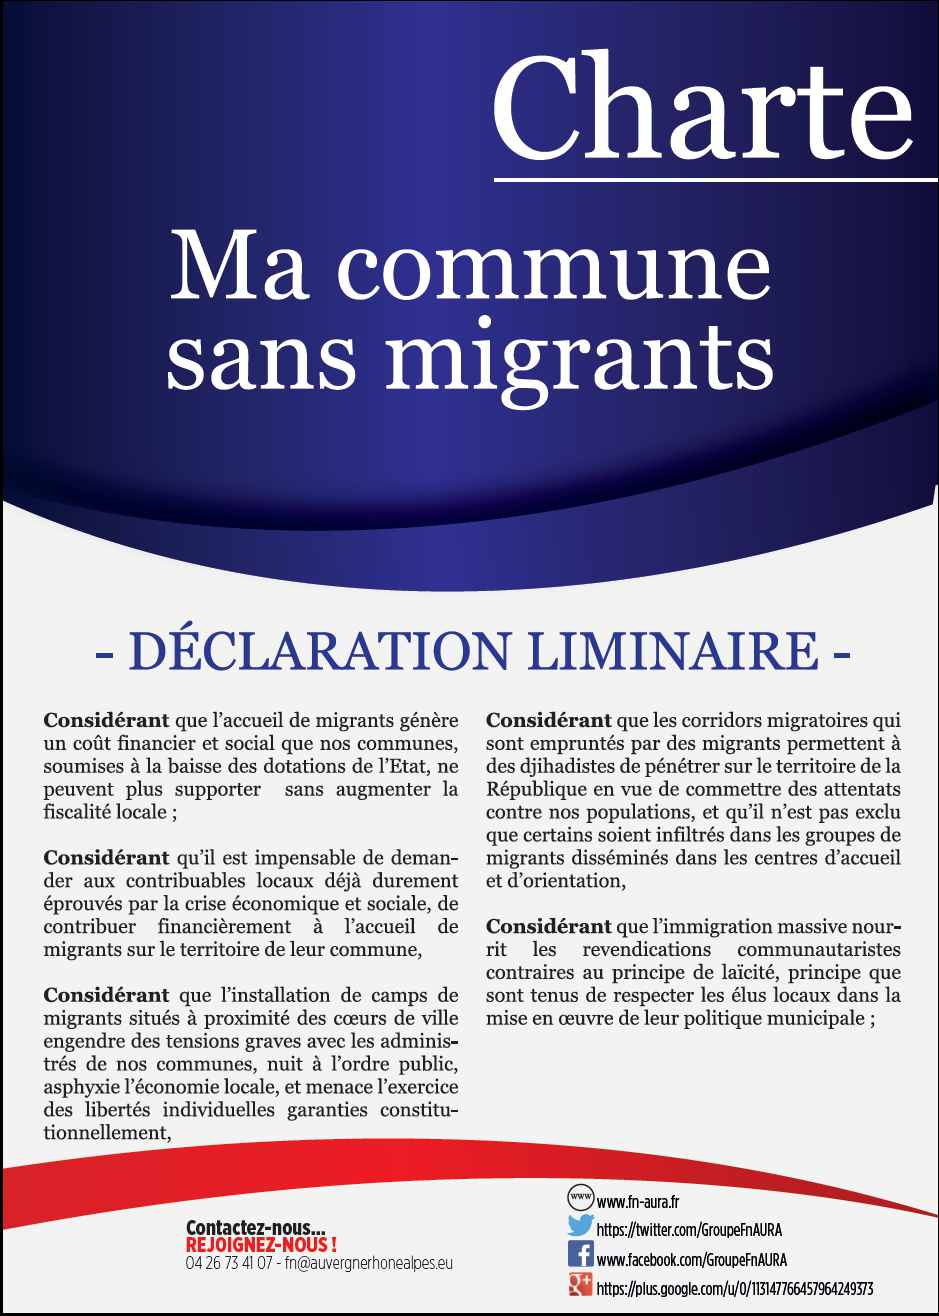 charte-ma-commune-sans-migrants